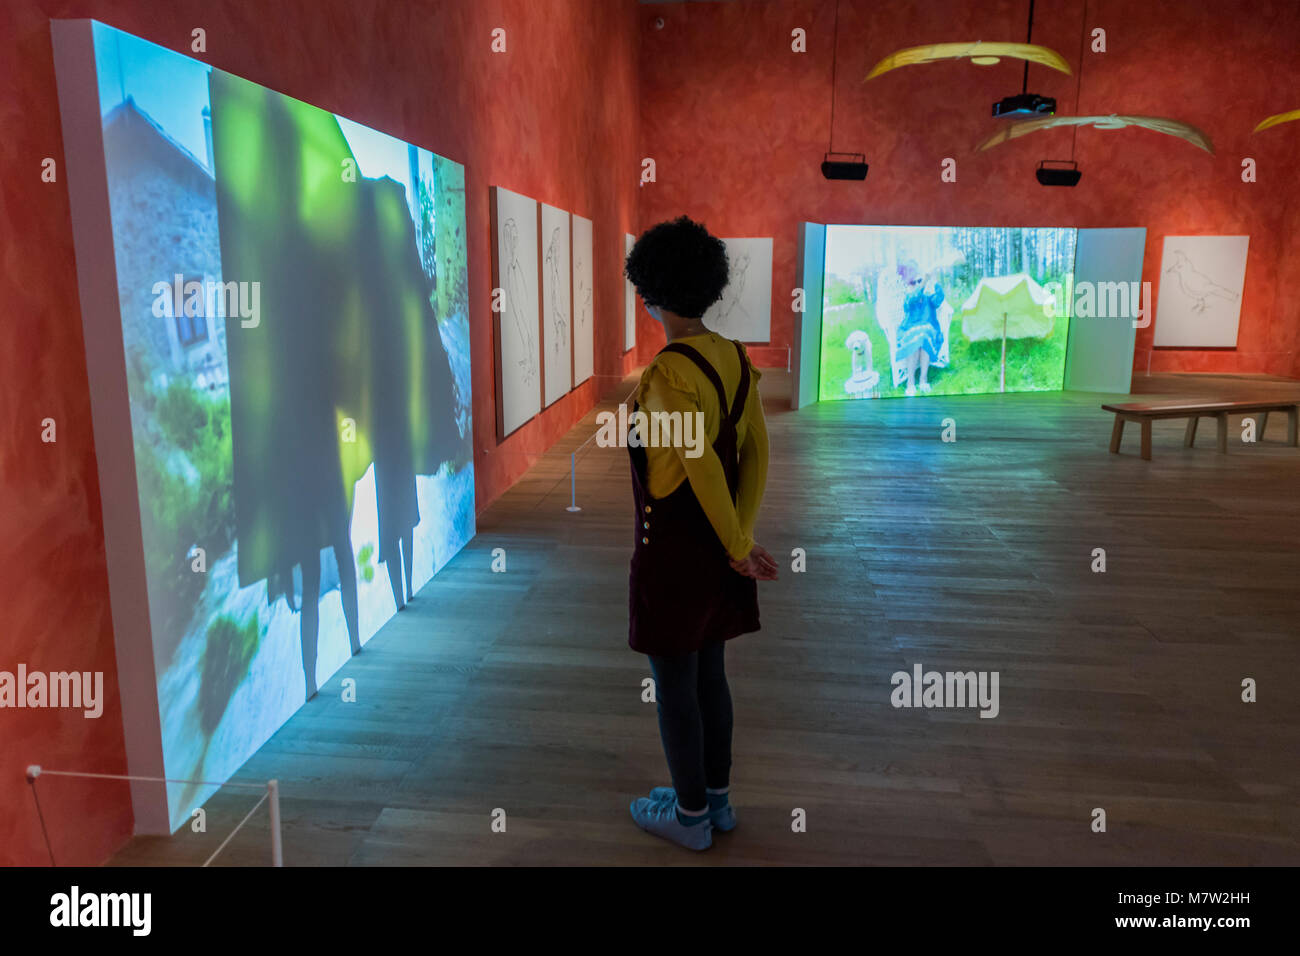 London, UK. 13th March, 2018. Stream or River, Flight or Pattern - Joan Jonas, Tate Modern opens largest survey Stock Photo